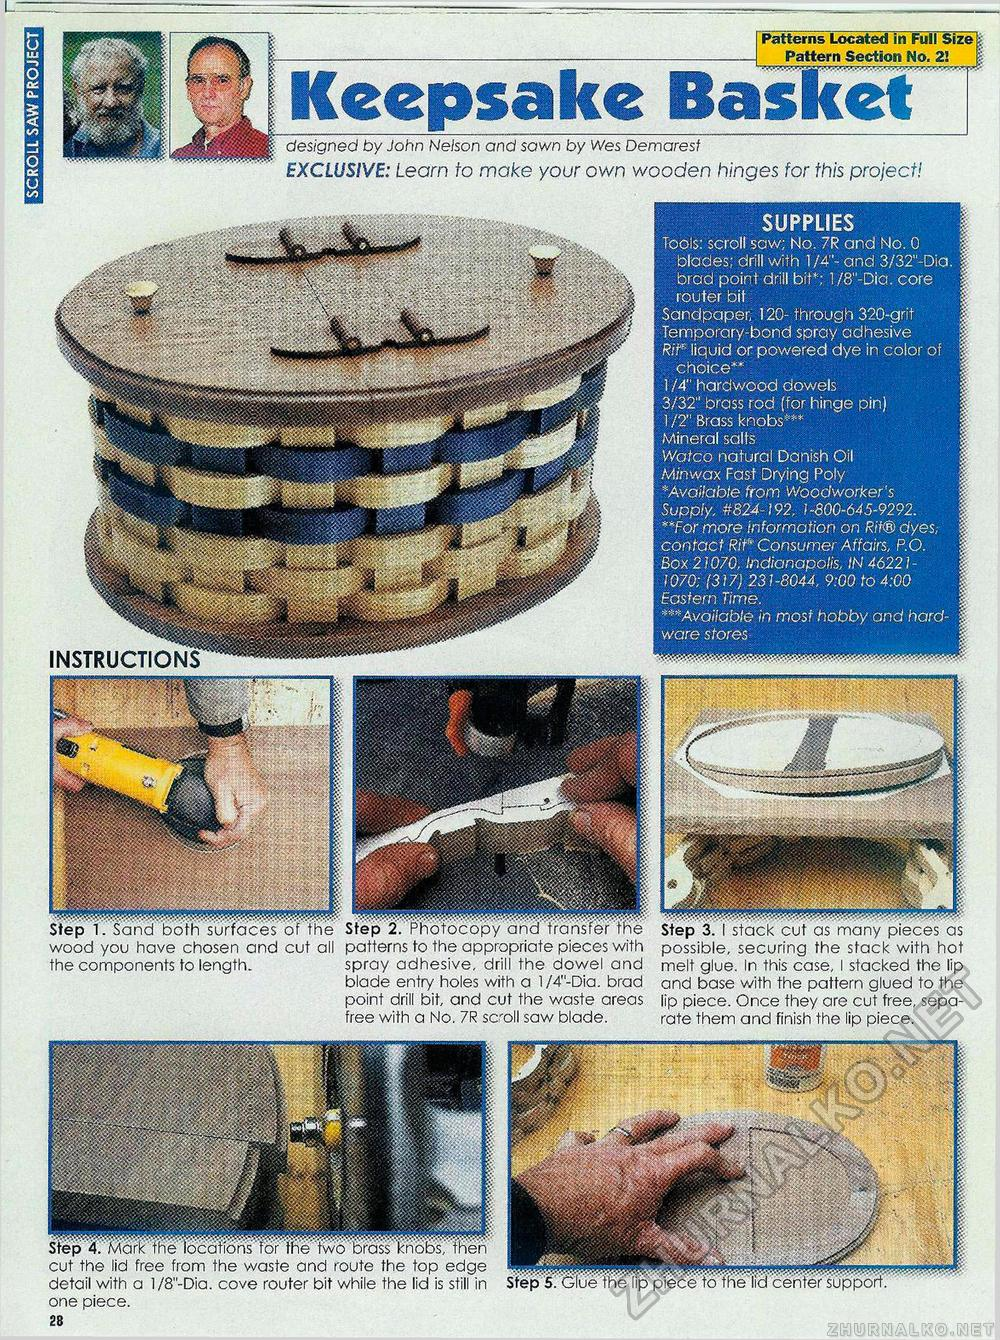 Creative Woodworks & crafts 2003-09, страница 28